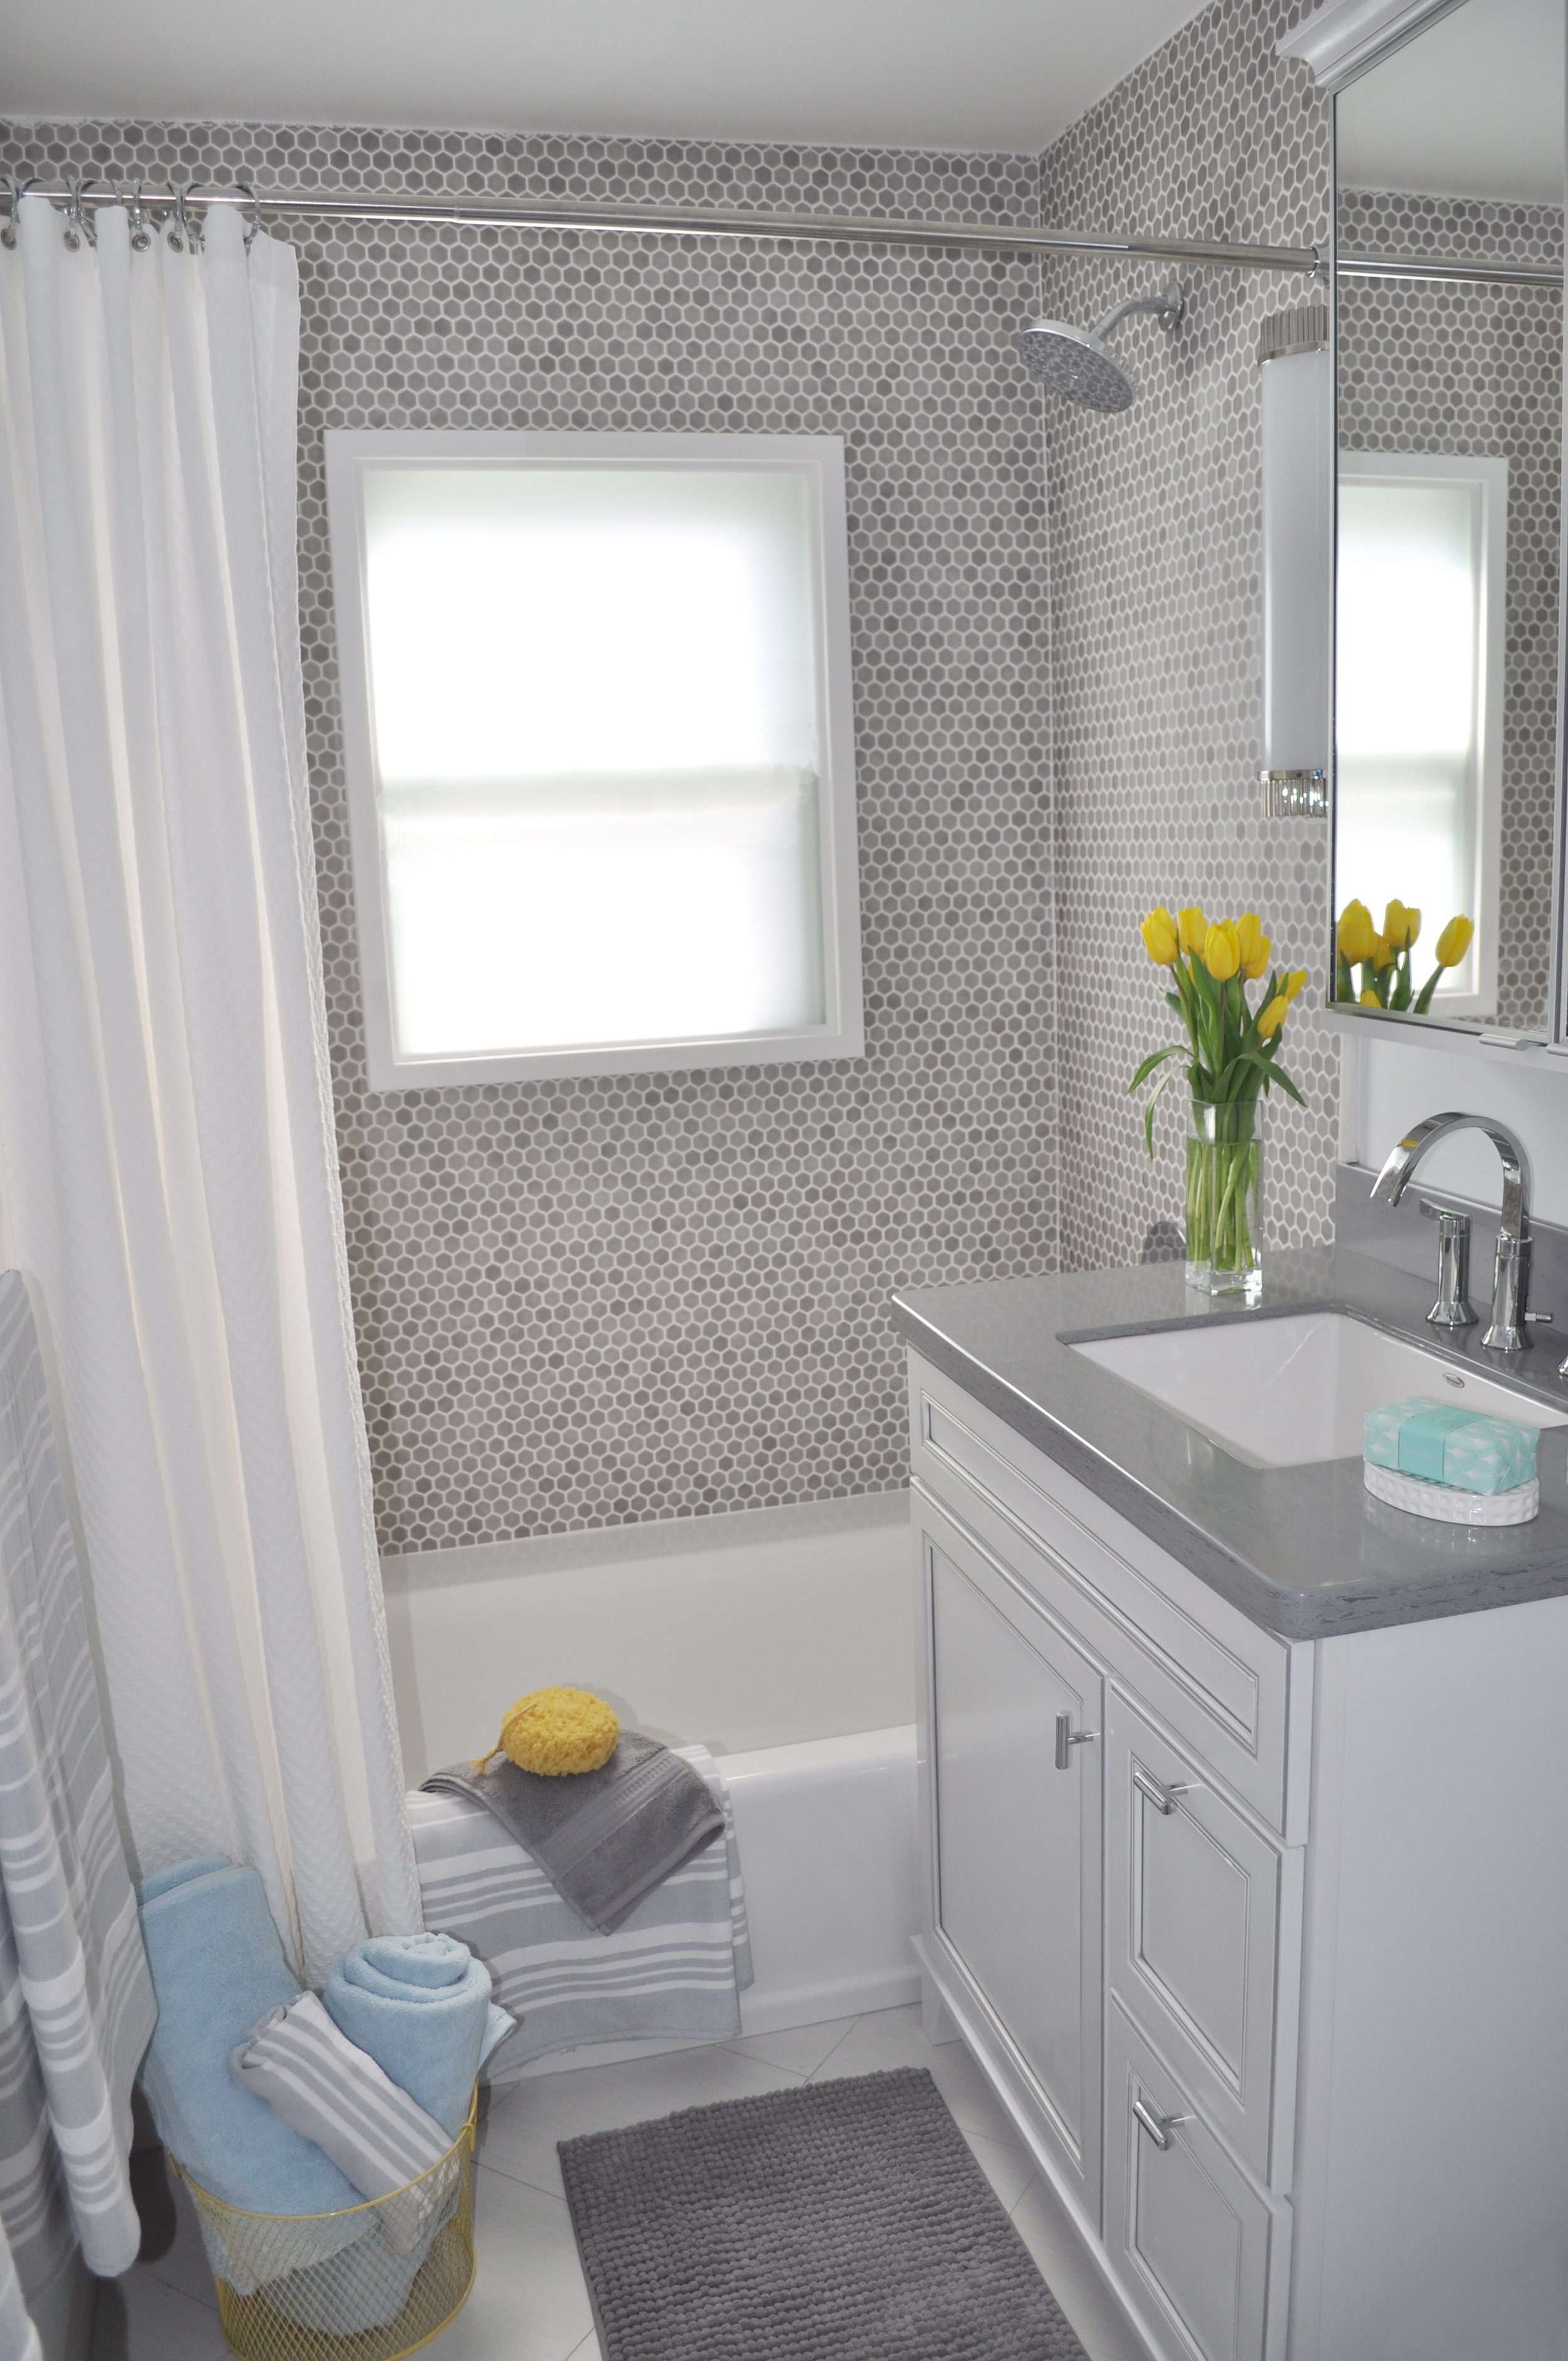 Kim Mitchell Production Designer_HGTV_Buying and Selling with The Property Brothers_Season 3_ Episode 316_Bathroom Renovation_Shoer Bath_Shower bath combination_Bathroom Design_Grey Bathroom.jpg